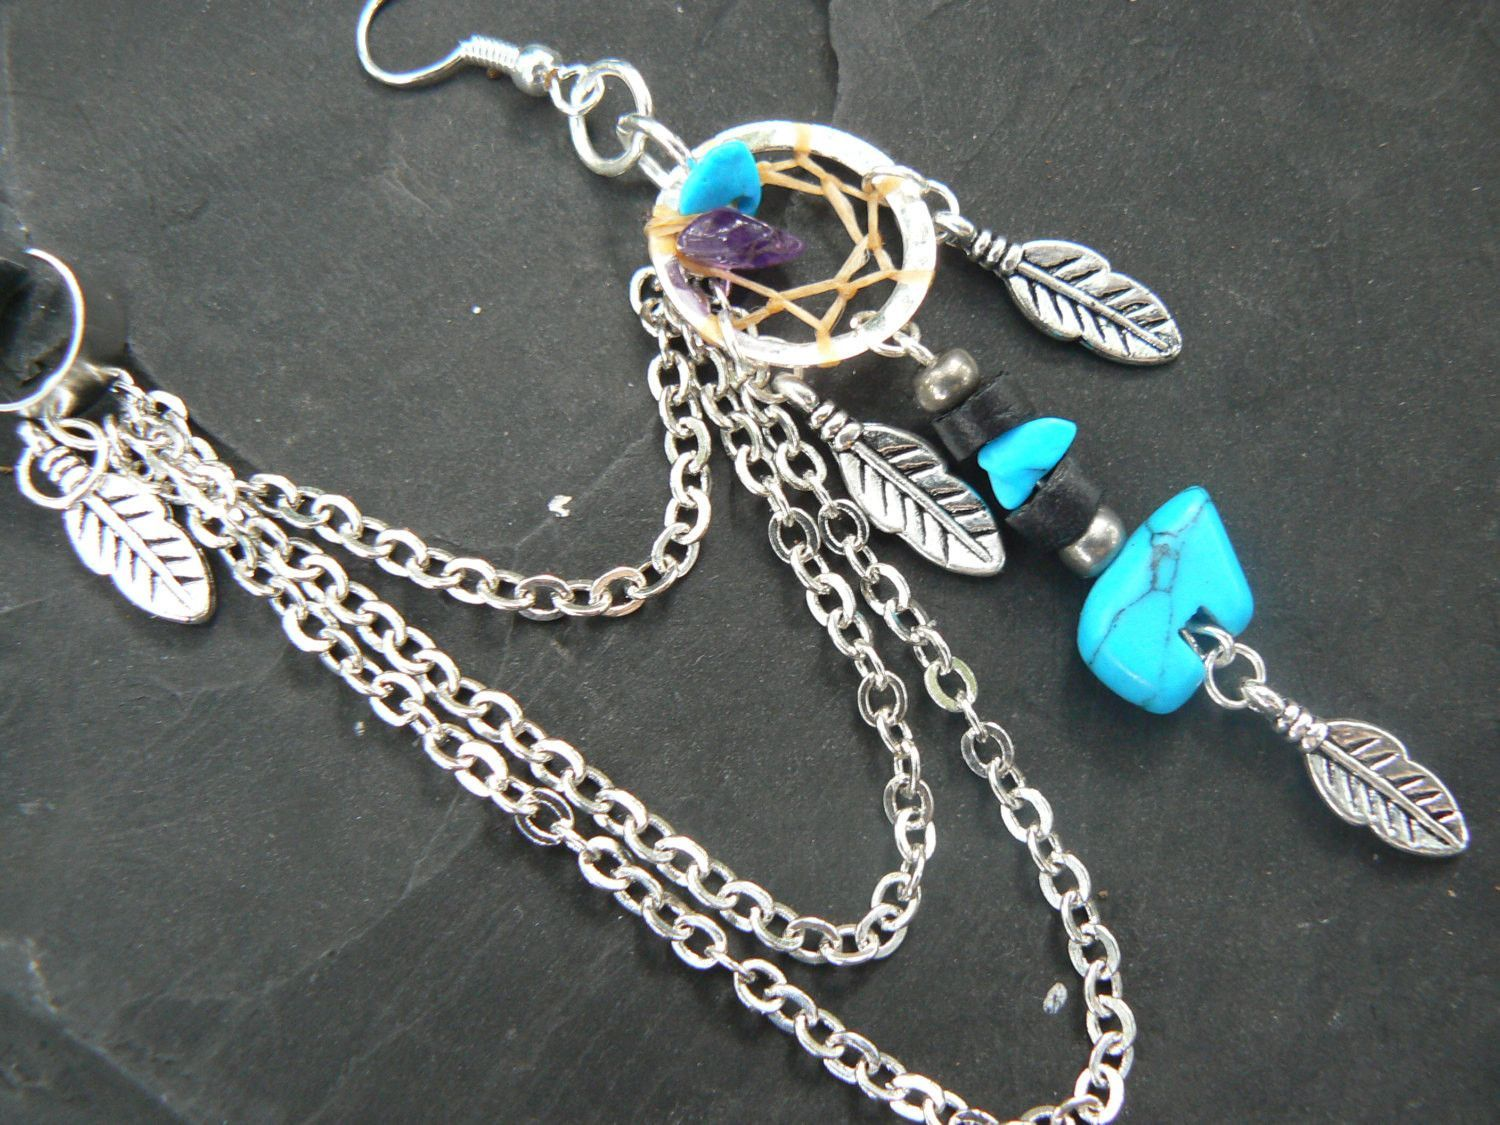 ONE turquoise zuni bear dreamcatcher chained ear cuff turquoise and amethyst cuff in boho gypsy hippie hipster tribal style